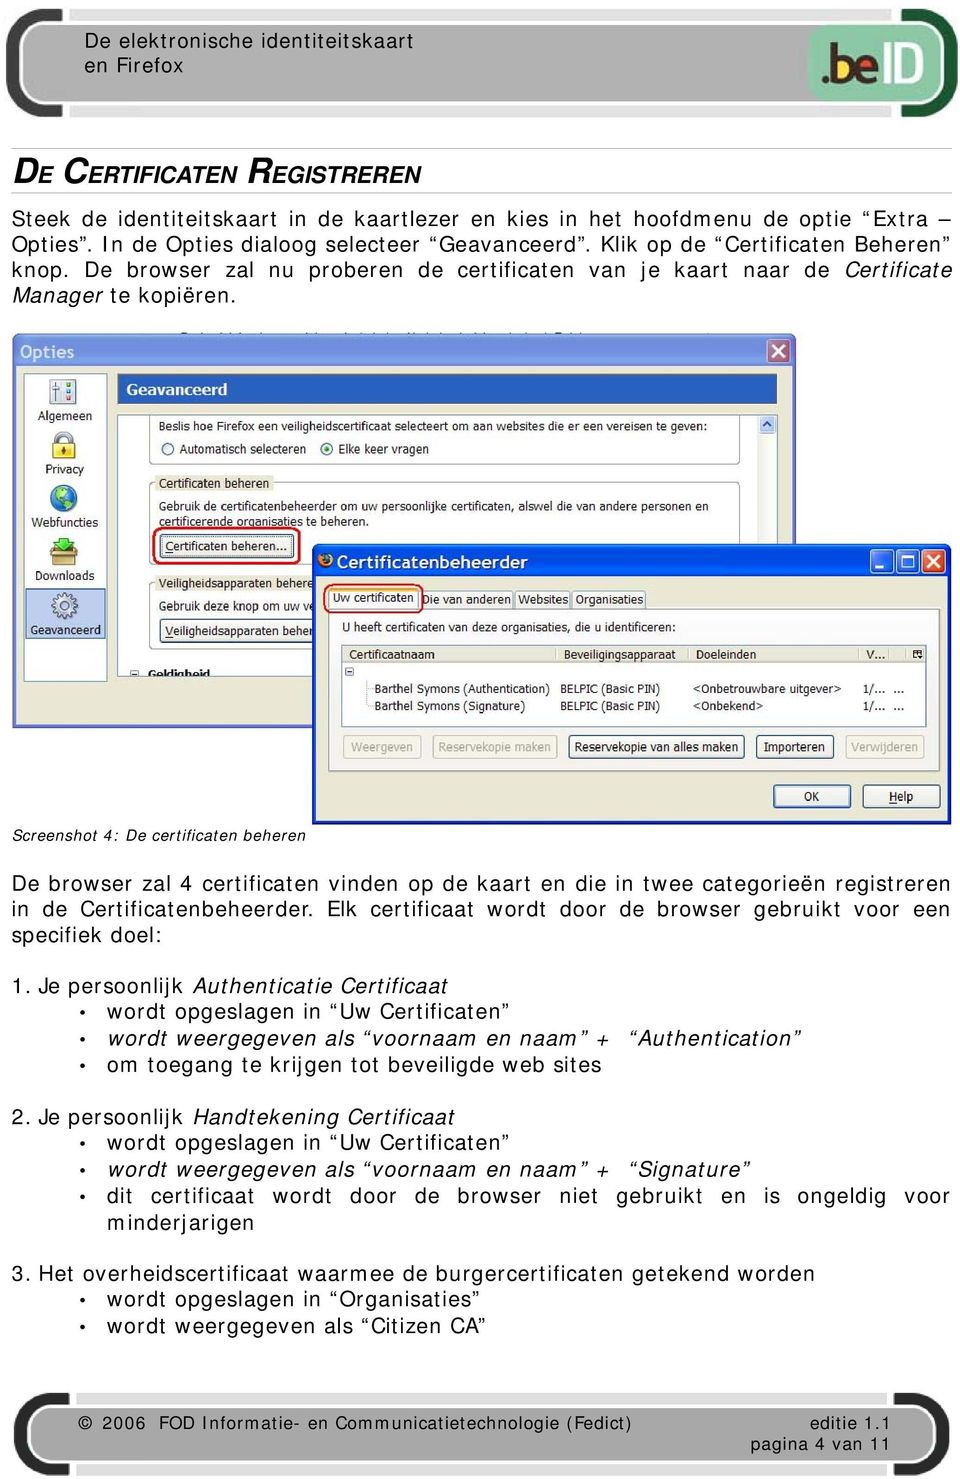 Screenshot 4: De certificaten beheren De browser zal 4 certificaten vinden op de kaart en die in twee categorieën registreren in de Certificatenbeheerder.